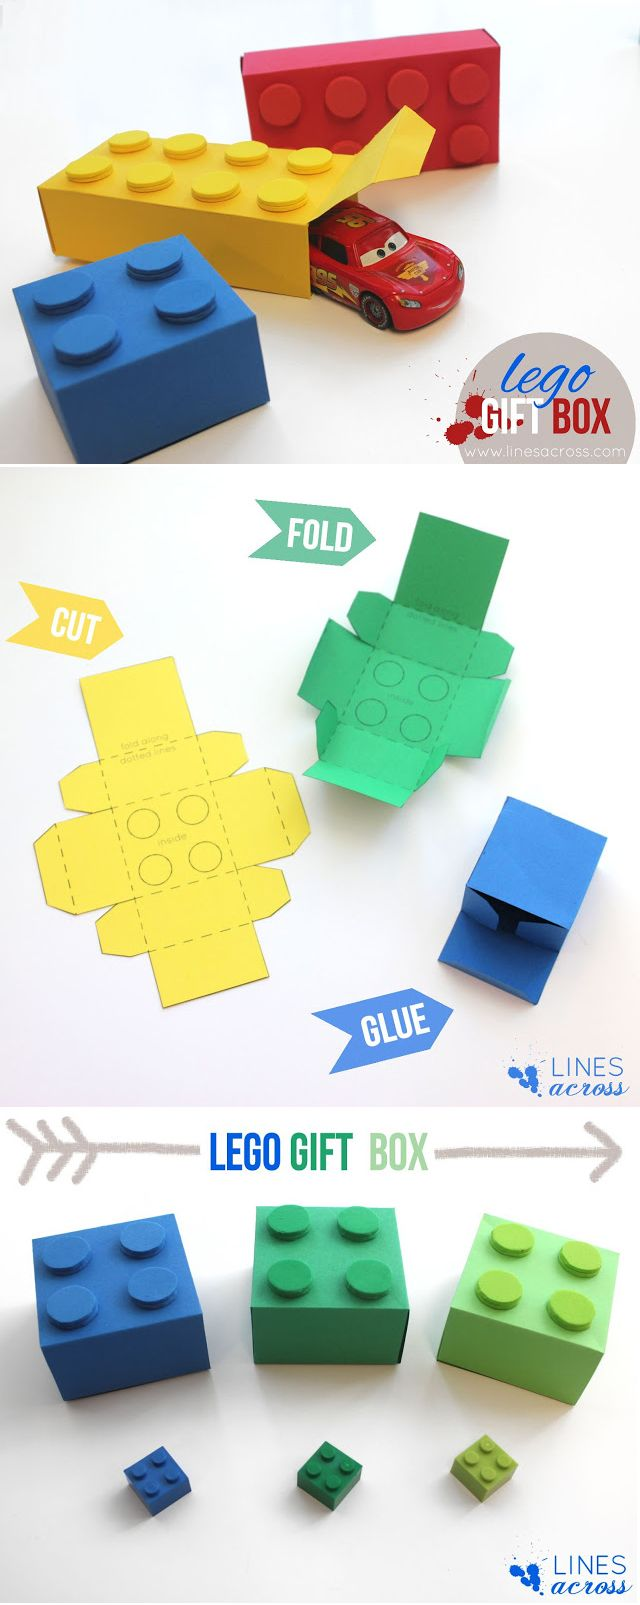 Lego Gift Boxes - with free templates from Lines Across http://www.linesacross.com/2012/11/lego-gift-boxes-with-free-templates.html